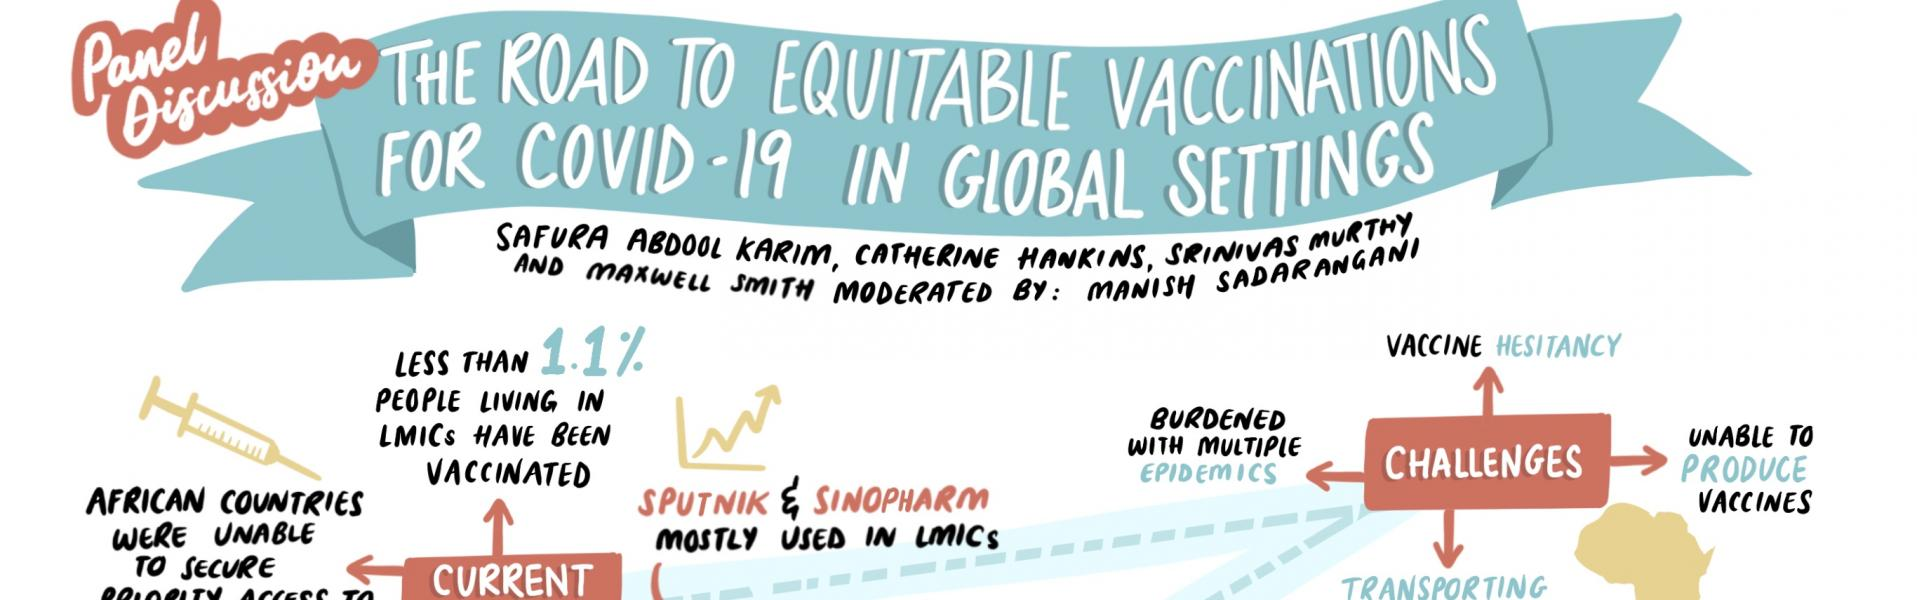 """Infographic by Shazmeen Omar illustrating concepts from """"The Road to Equitable Vaccinations for COVID-19 in Global Settings"""" panel discussion"""